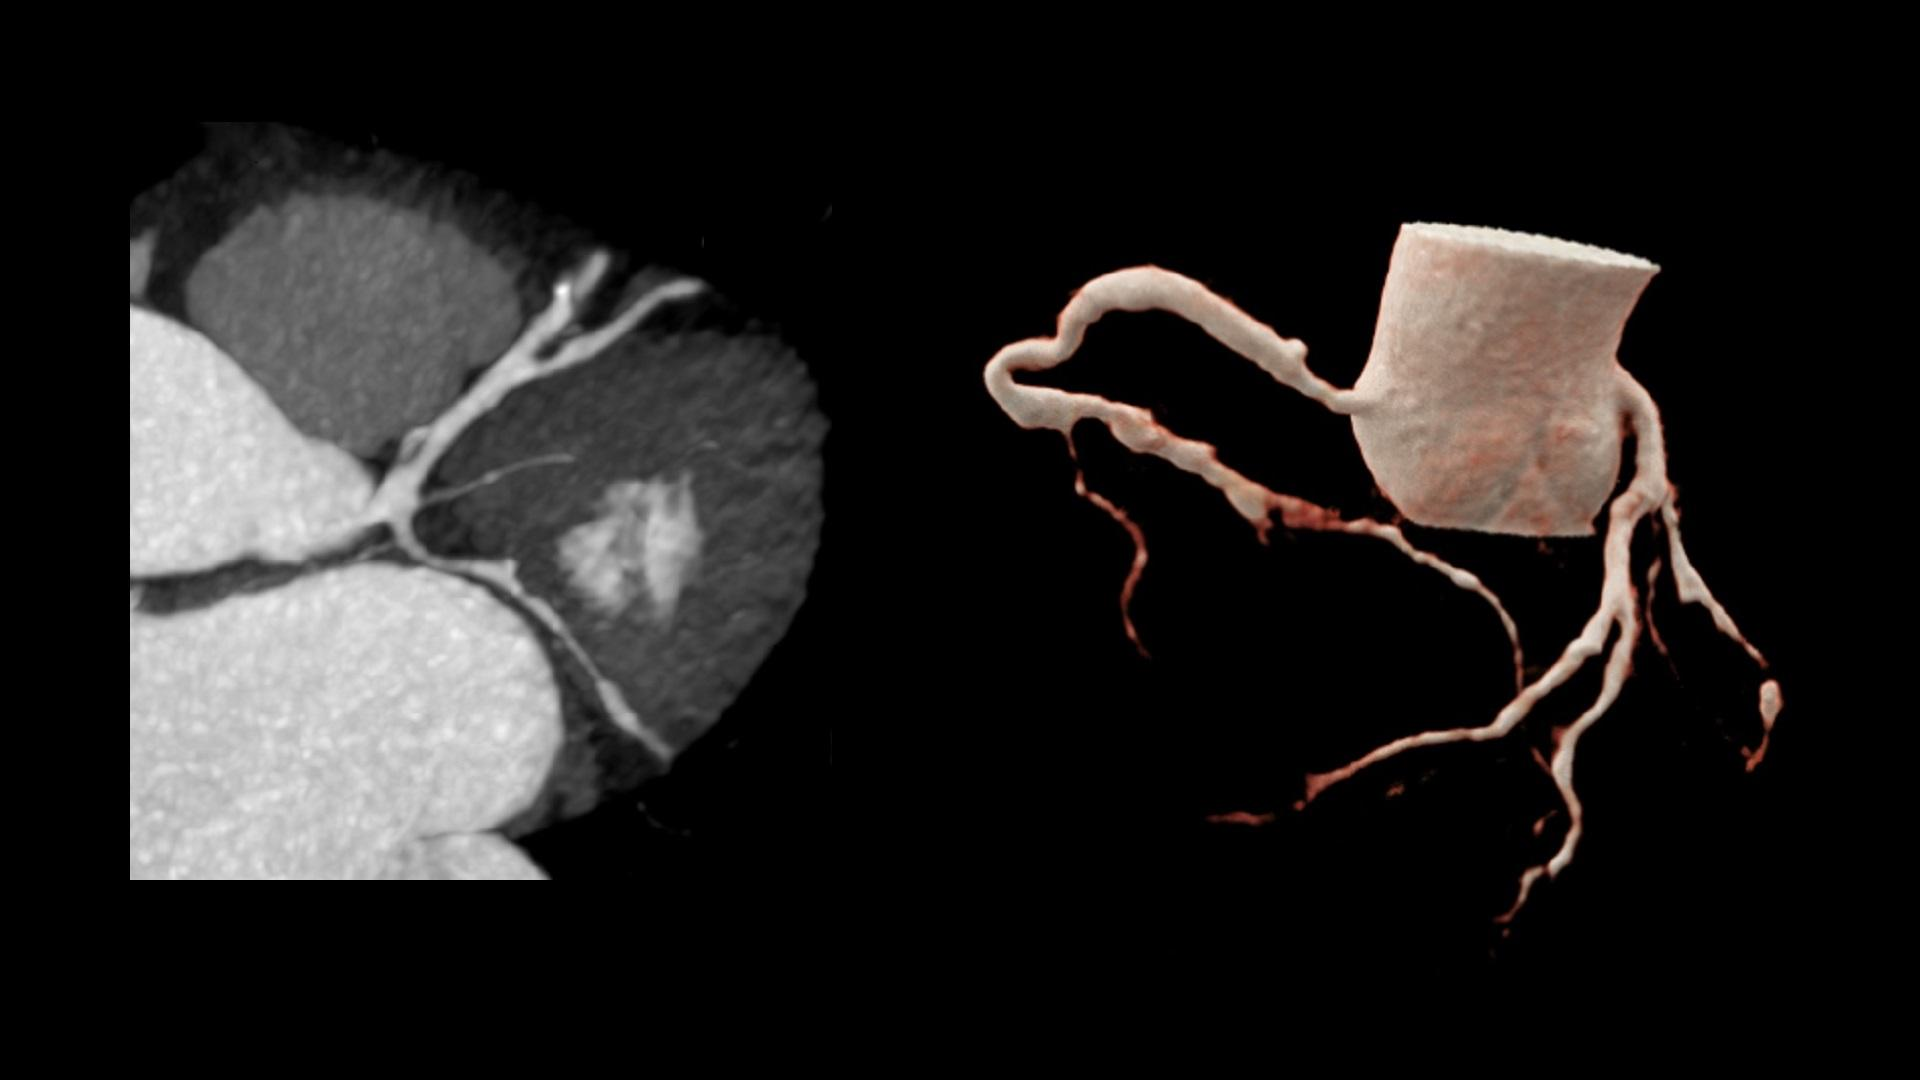 MIP and cVRT images show the coronary tree with multiple stenoses.